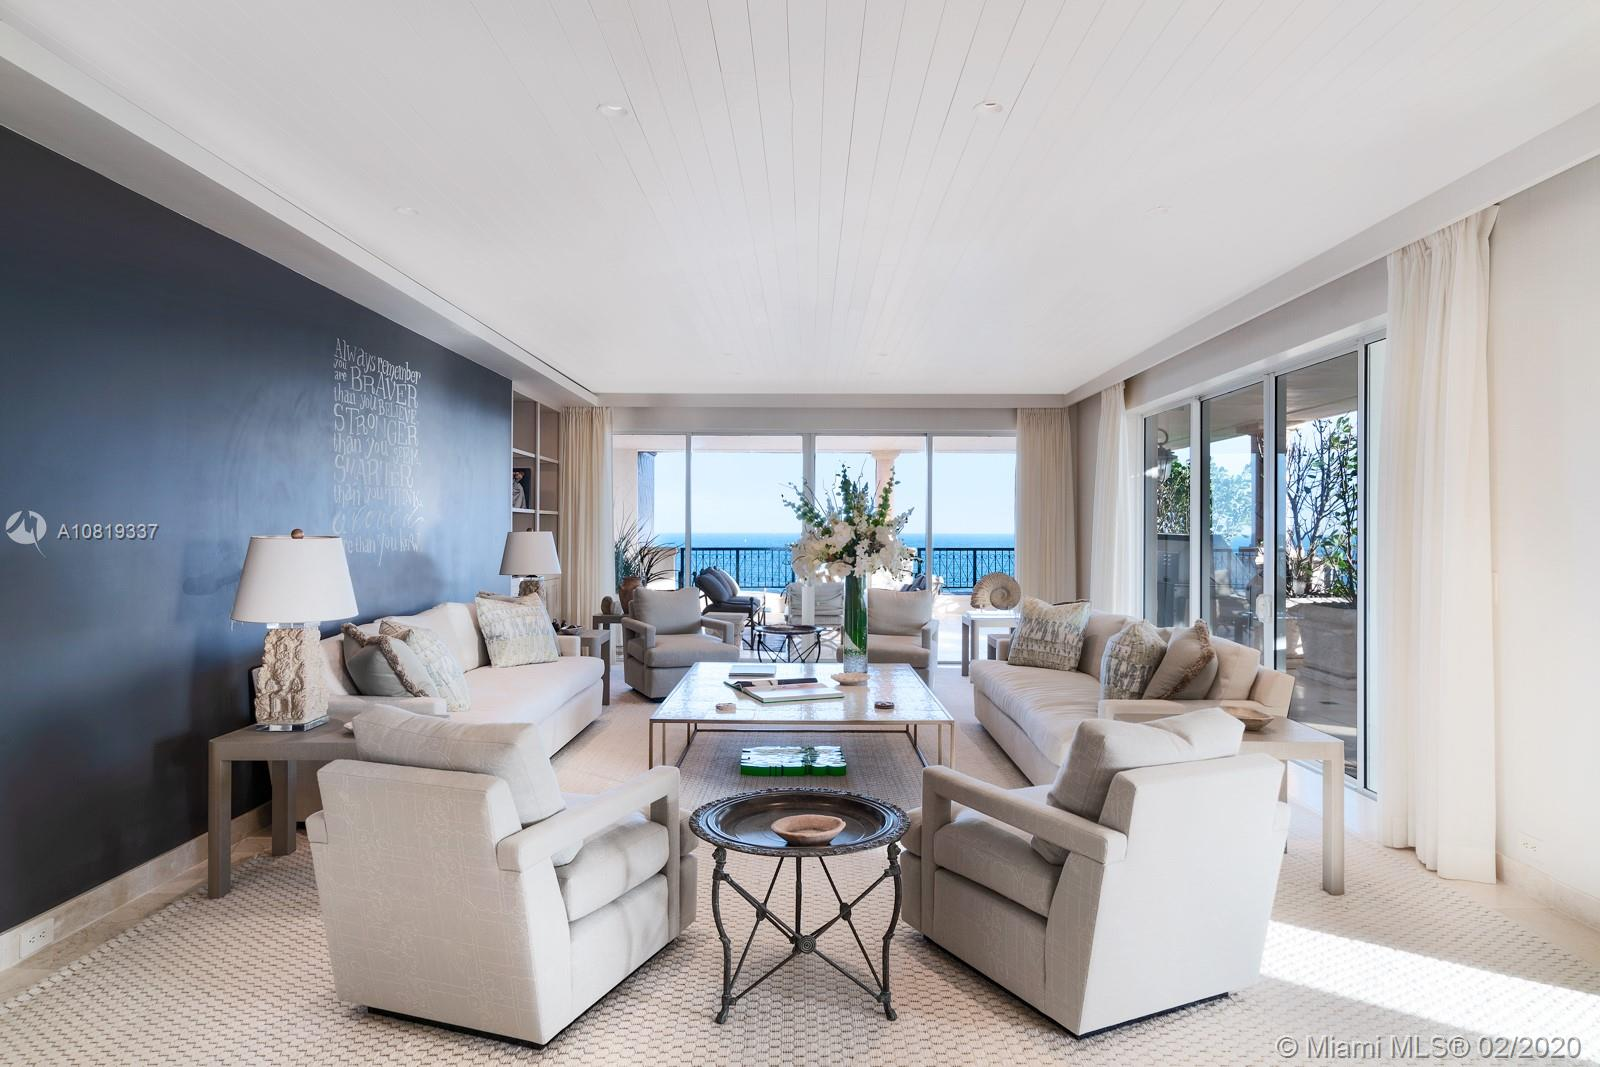 7600 Fisher Island Dr, 7664 - Miami Beach, Florida